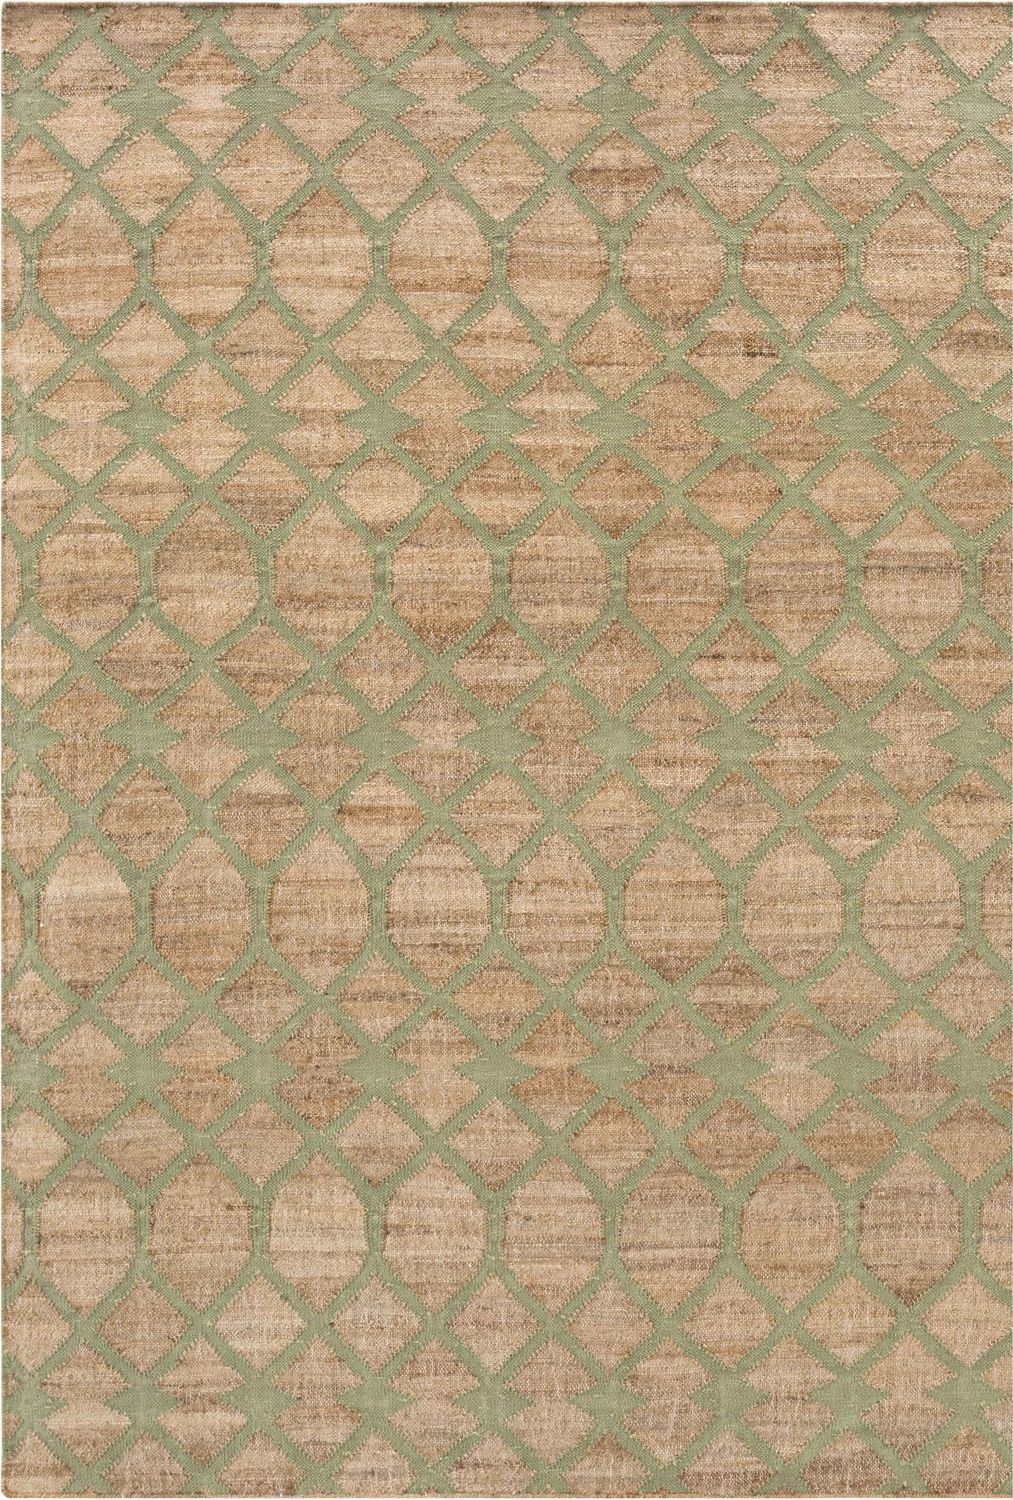 Gandia Blasco Green Kilim Rodas From The Gandia Blasco Designer Rugs Collection At Modern Area Rugs Green Kilim Rug Design Modern Area Rugs